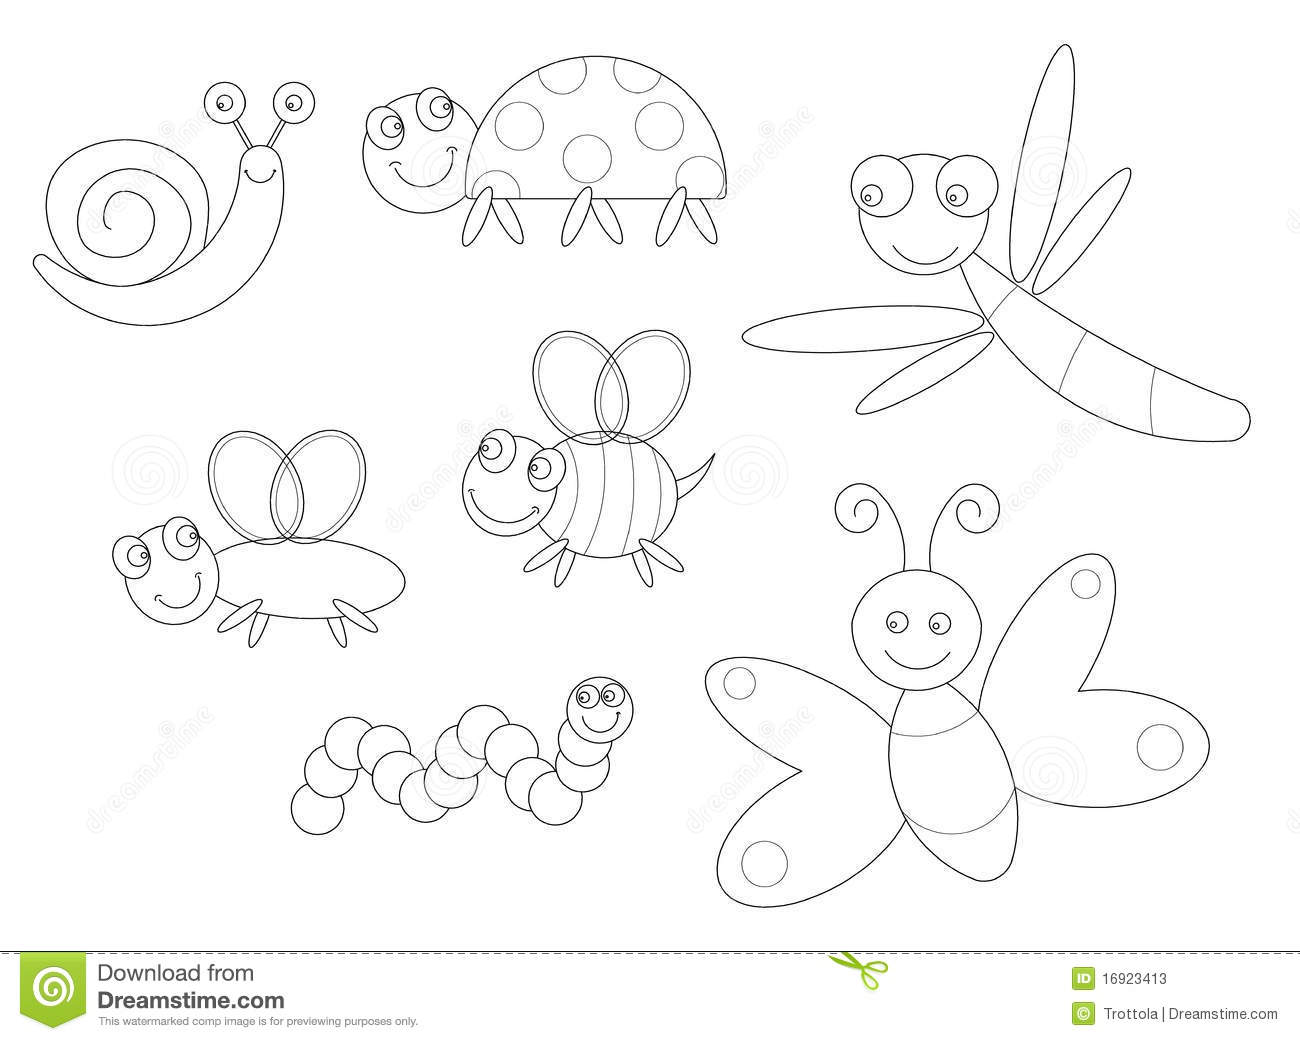 insect coloring pictures insect coloring download insect coloring for free 2019 insect coloring pictures